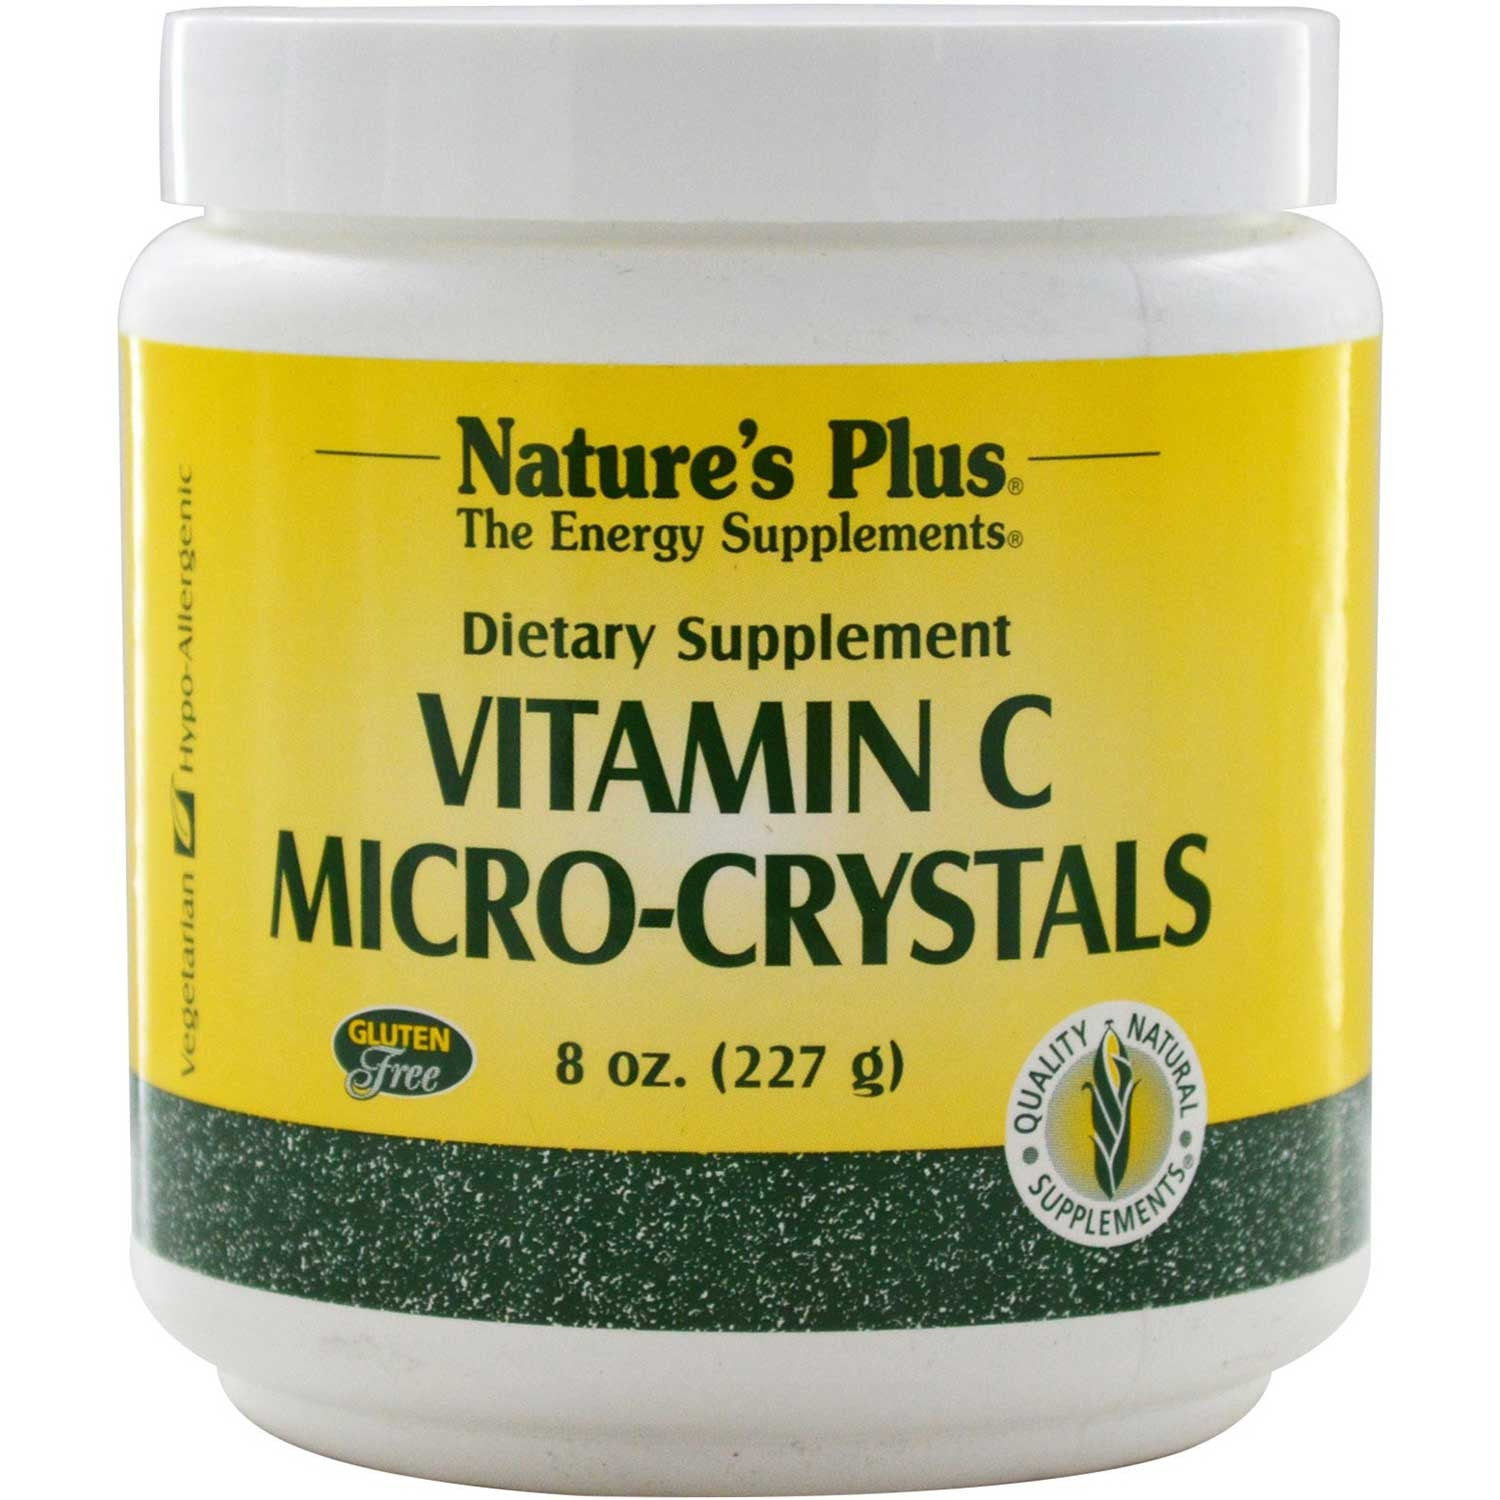 Natures Plus Vitamin C Micro-Crystals, 227 g-NaturesWisdom